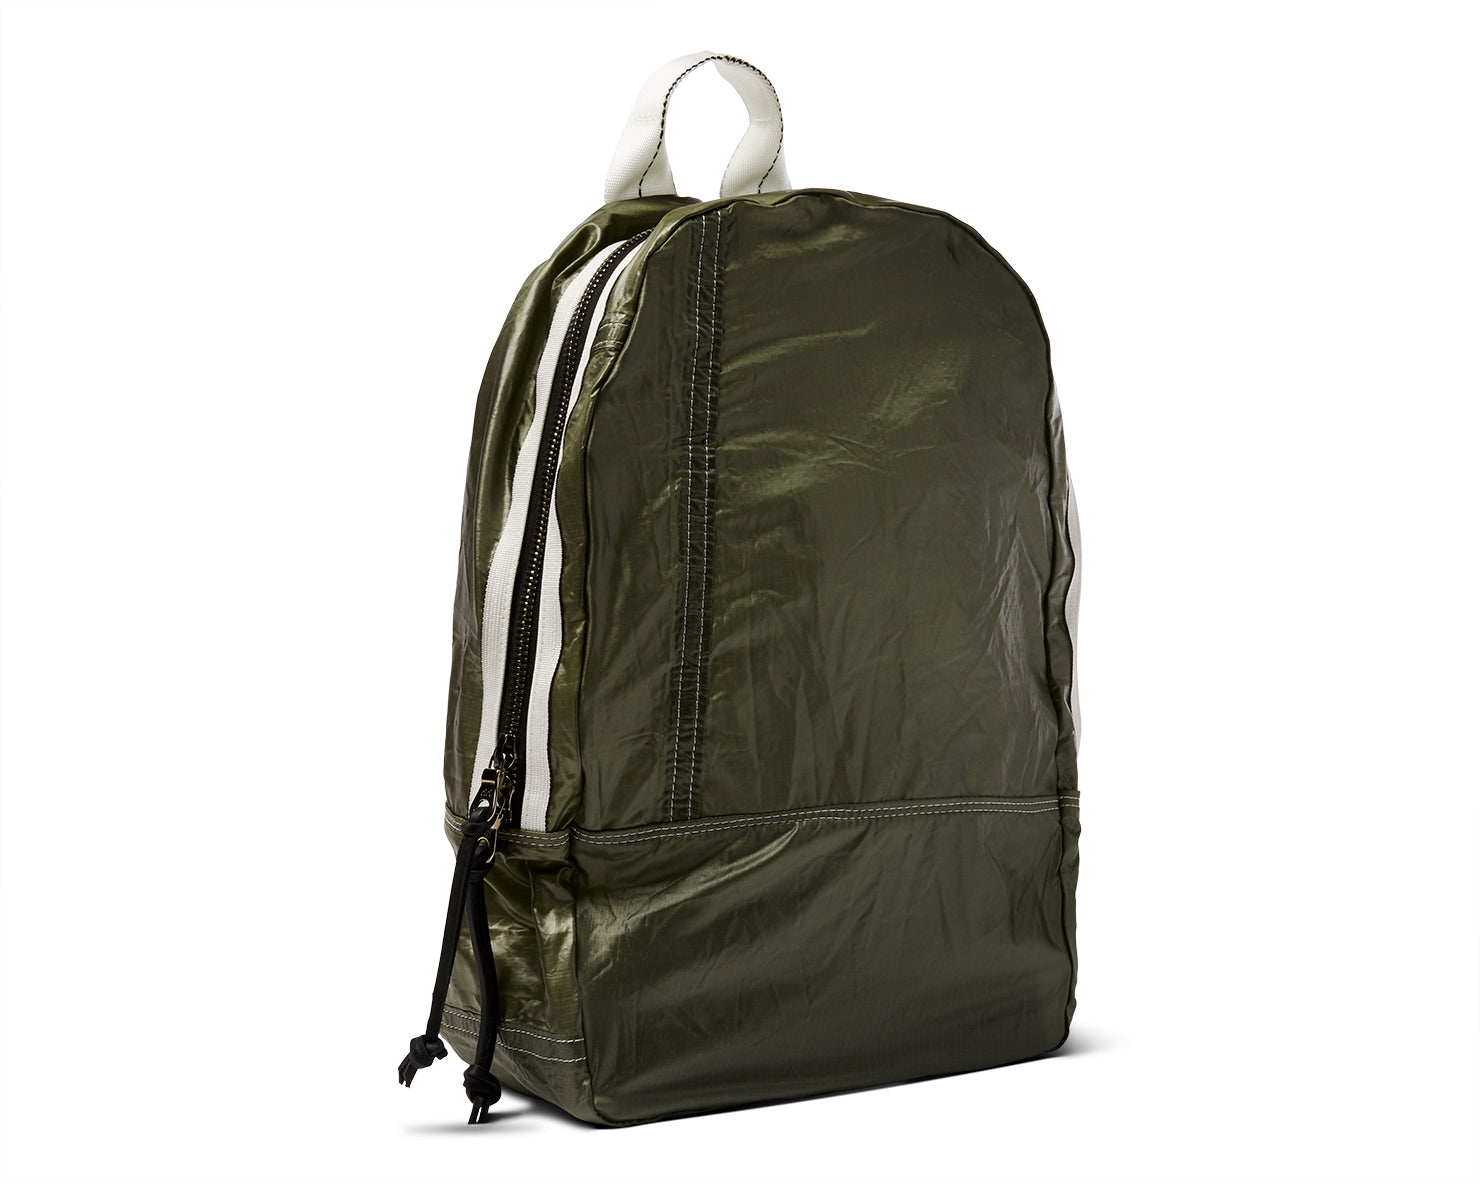 PARACHUTE MINI DAYPACK | KILLSPENCER® - Olive Drab Parachute